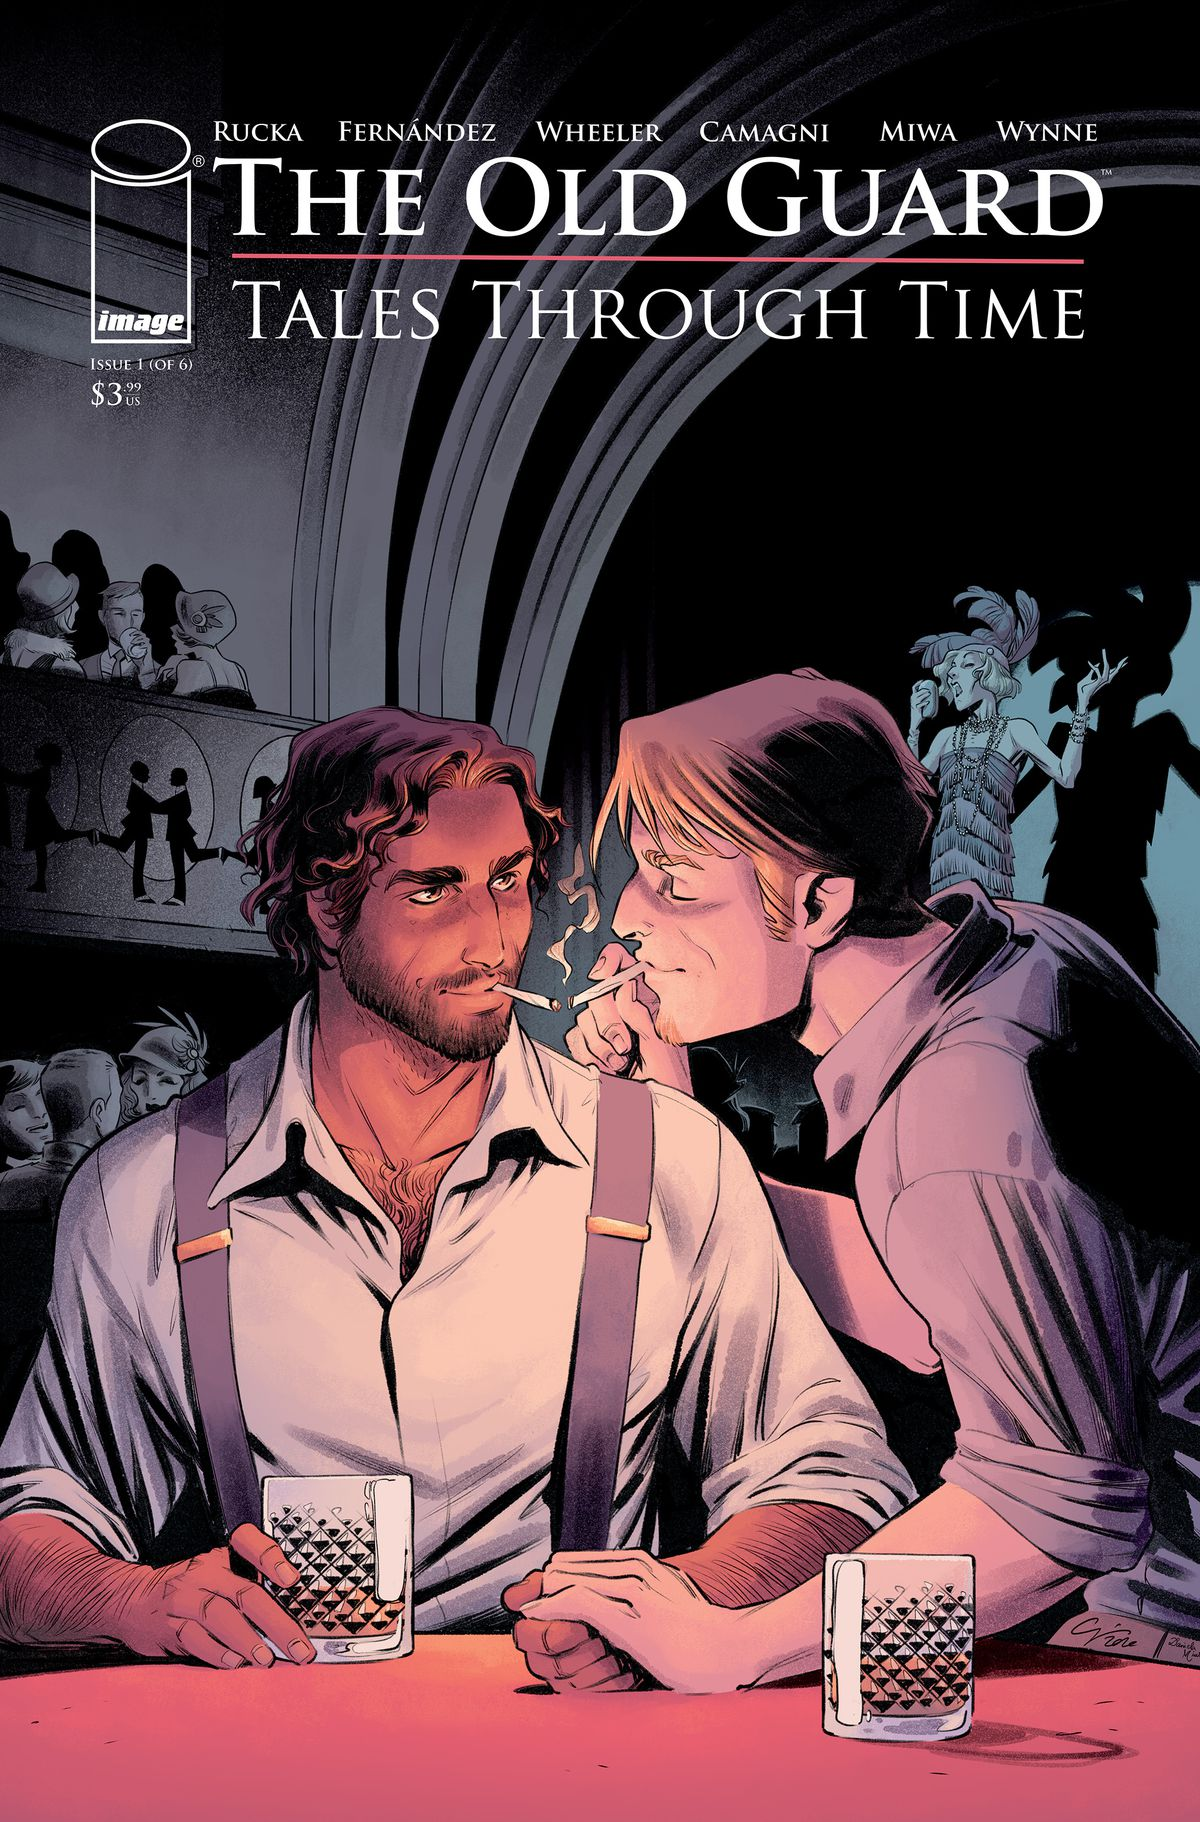 The Old Guard: Tales Through Time issue #1 cover - Nicky and Joe sit at a bar with a woman singing in the background during WWII